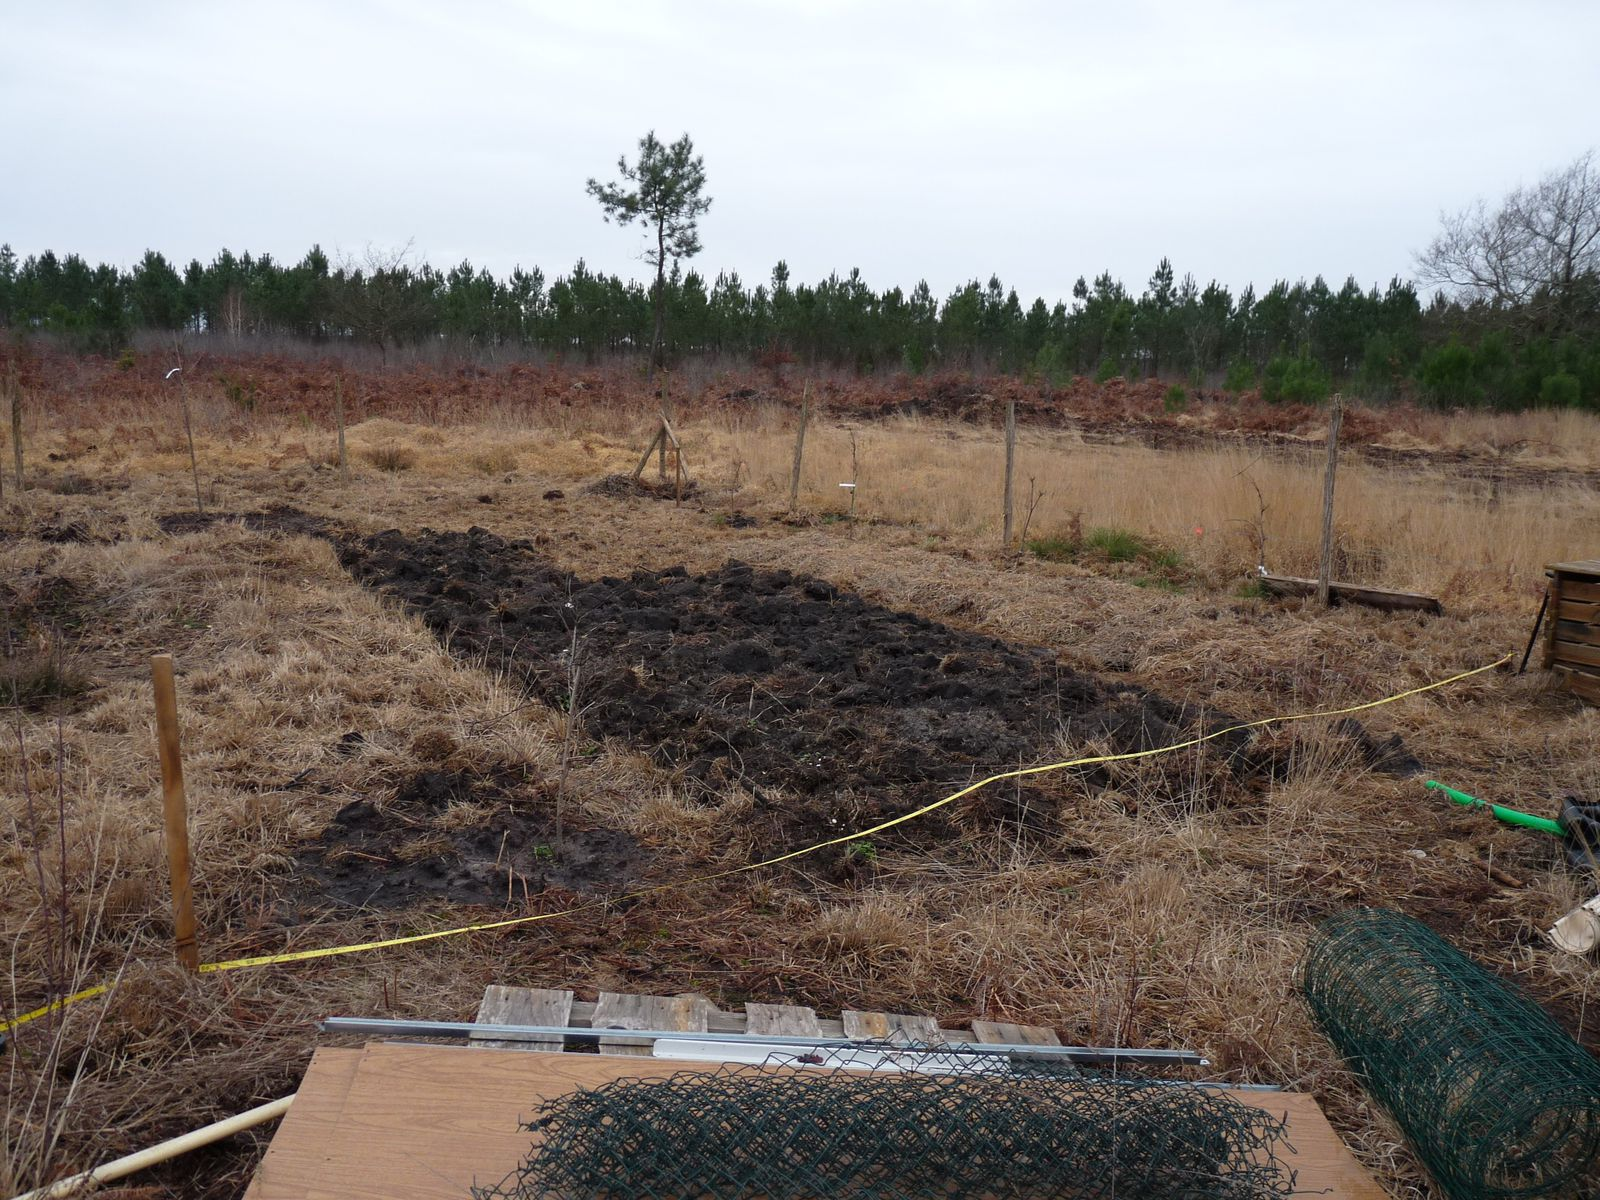 Implantation du potager monjardindansleslandes for Implantation jardin paysager